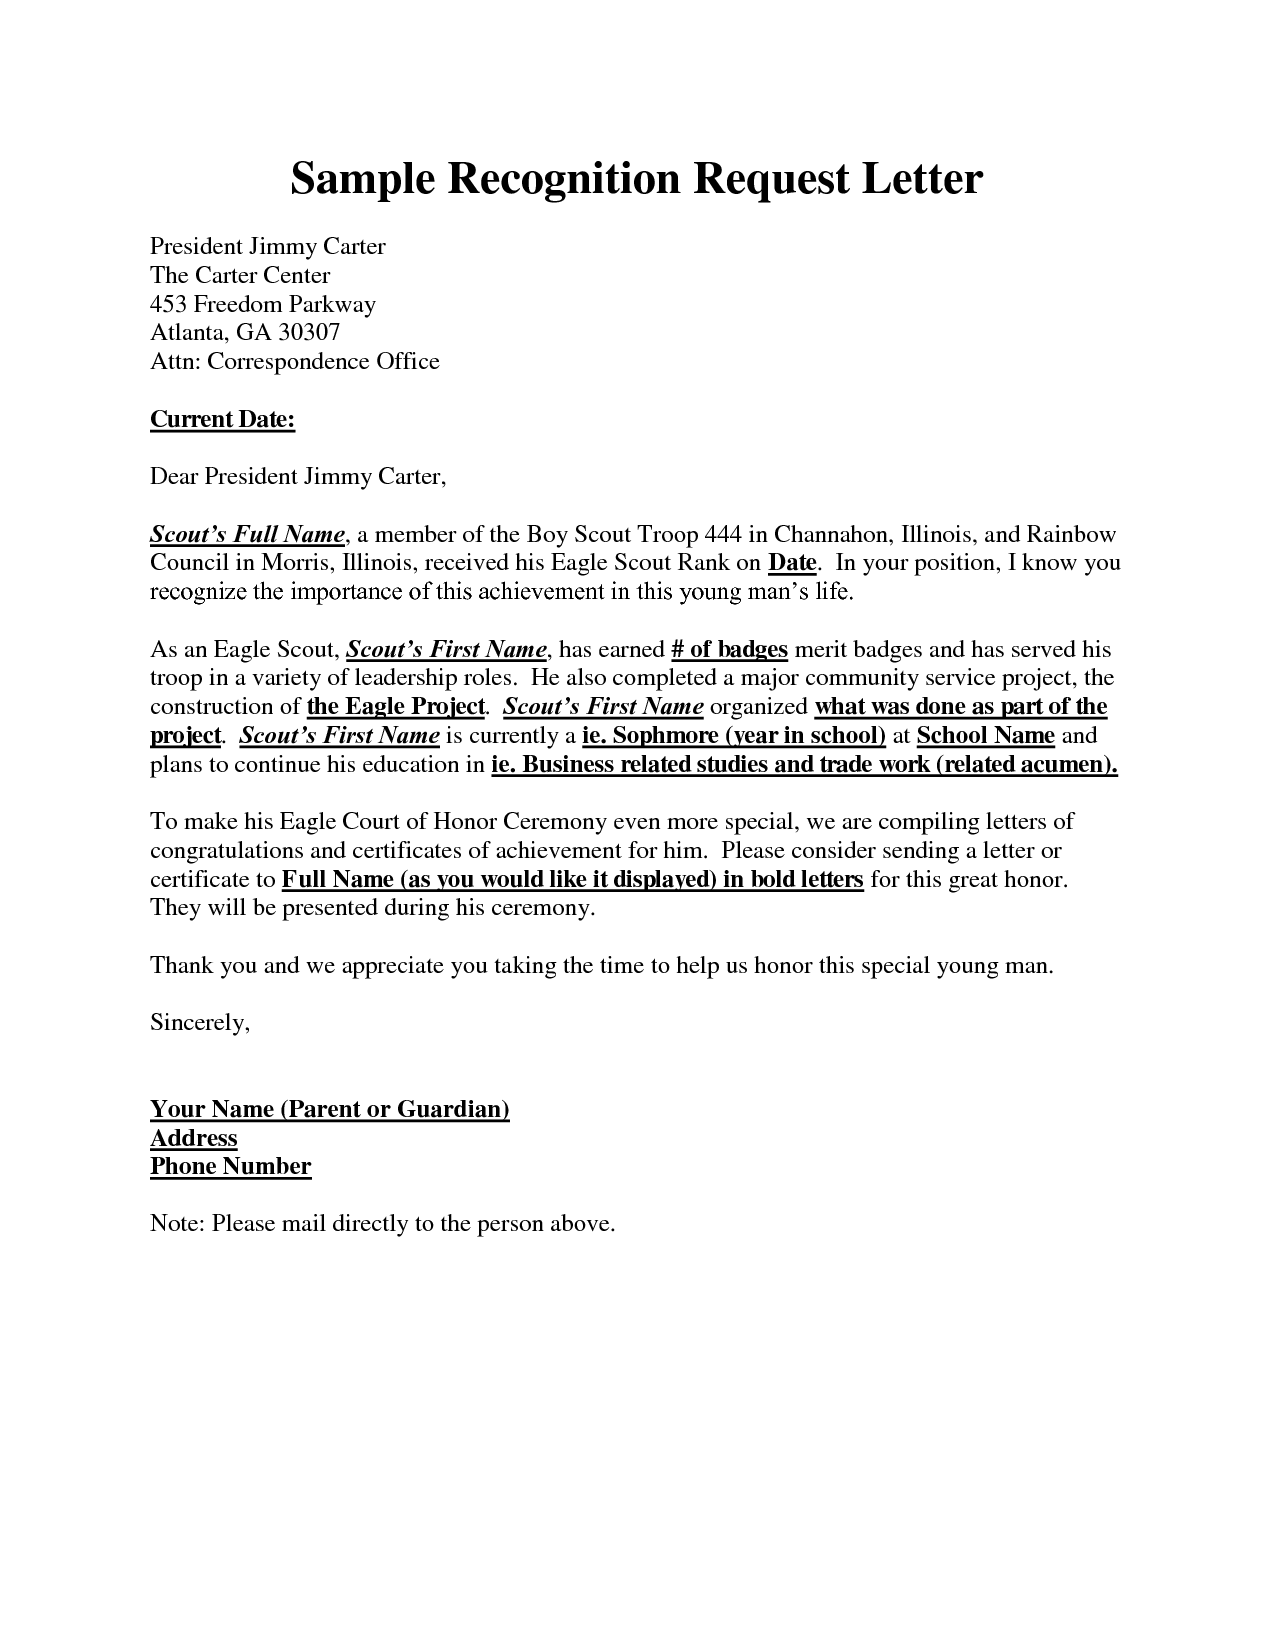 Example Recognition Request Letter